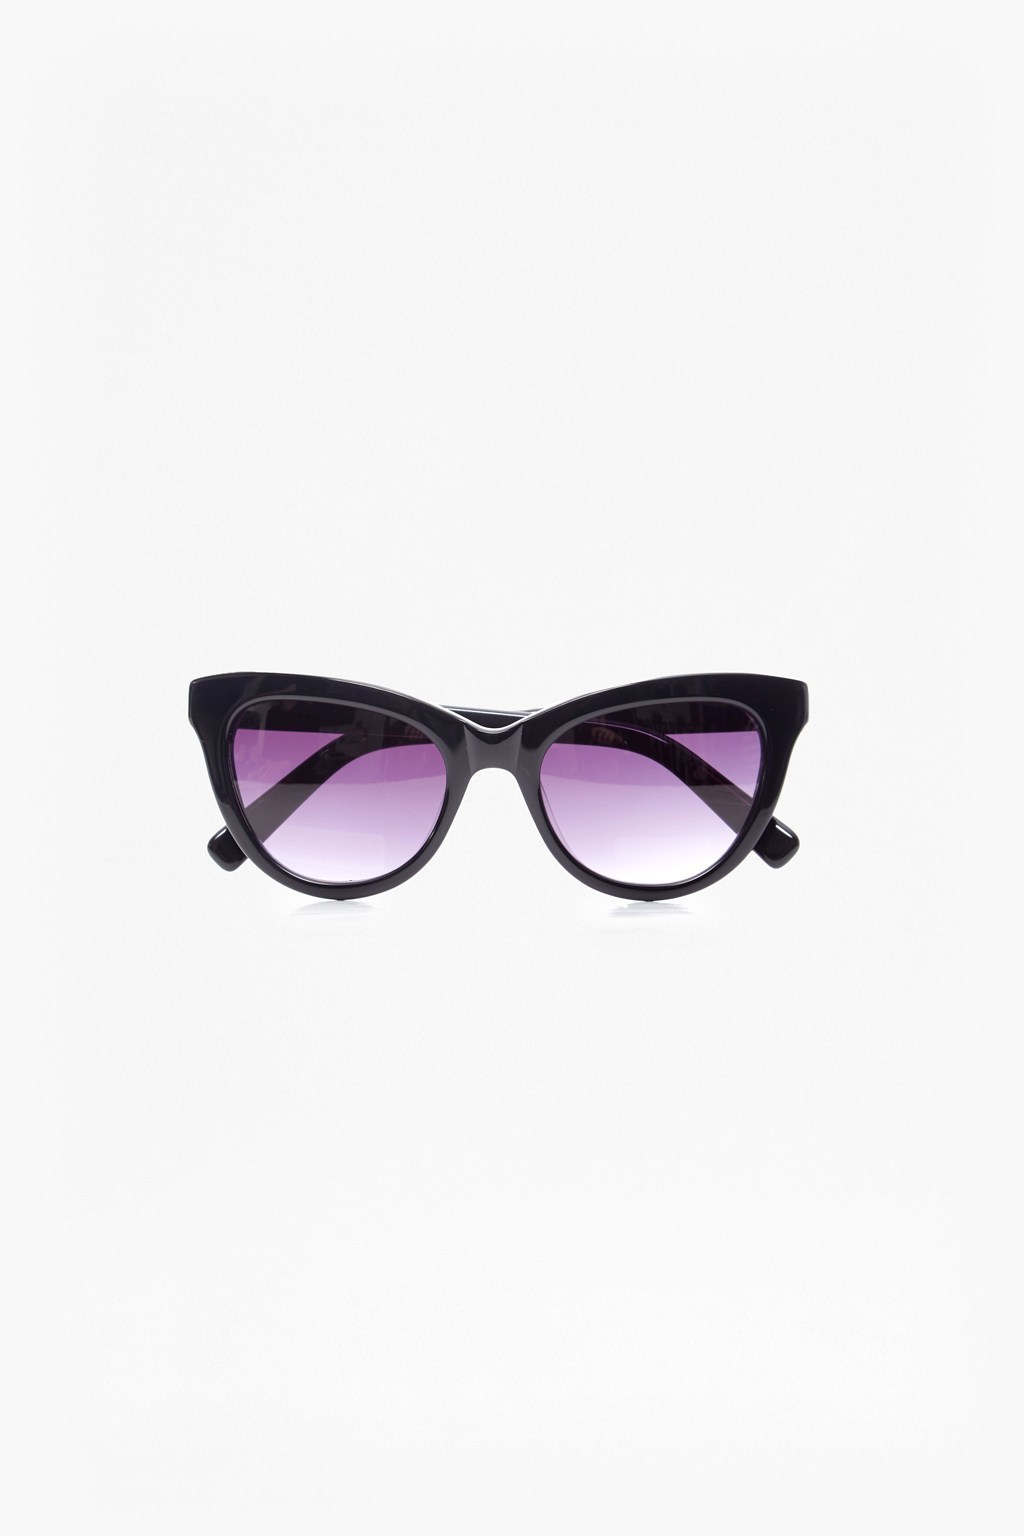 Cat Eye Sunglasses Black - predominant colour: black; occasions: casual, holiday; style: cateye; size: standard; material: plastic/rubber; pattern: plain; finish: plain; season: s/s 2016; wardrobe: basic